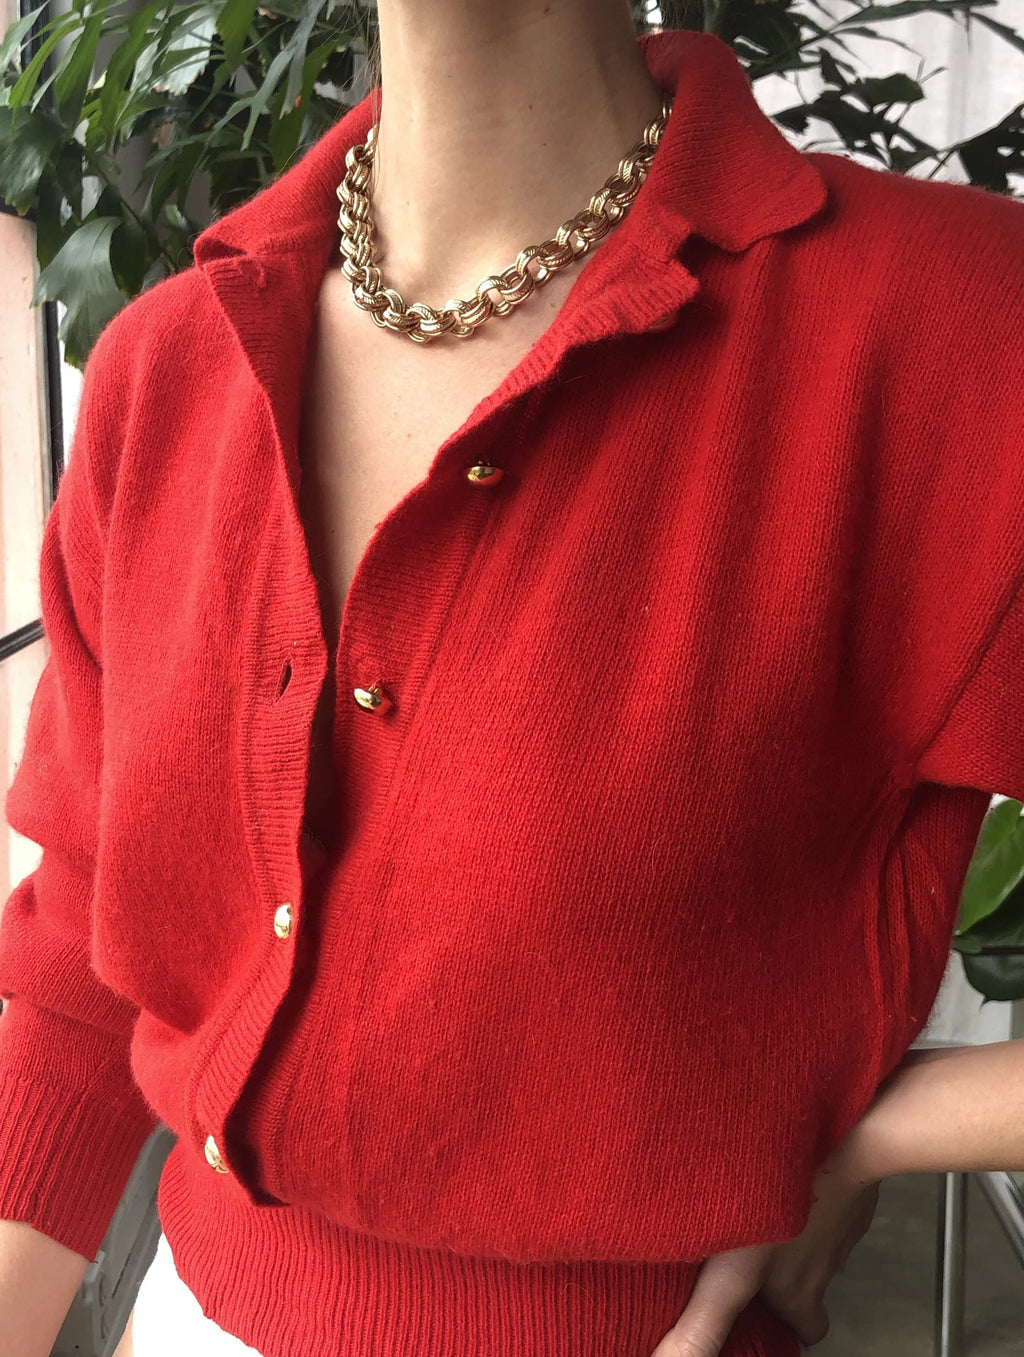 Crimson Angora With Gold Button Detail - Size Small To Medium